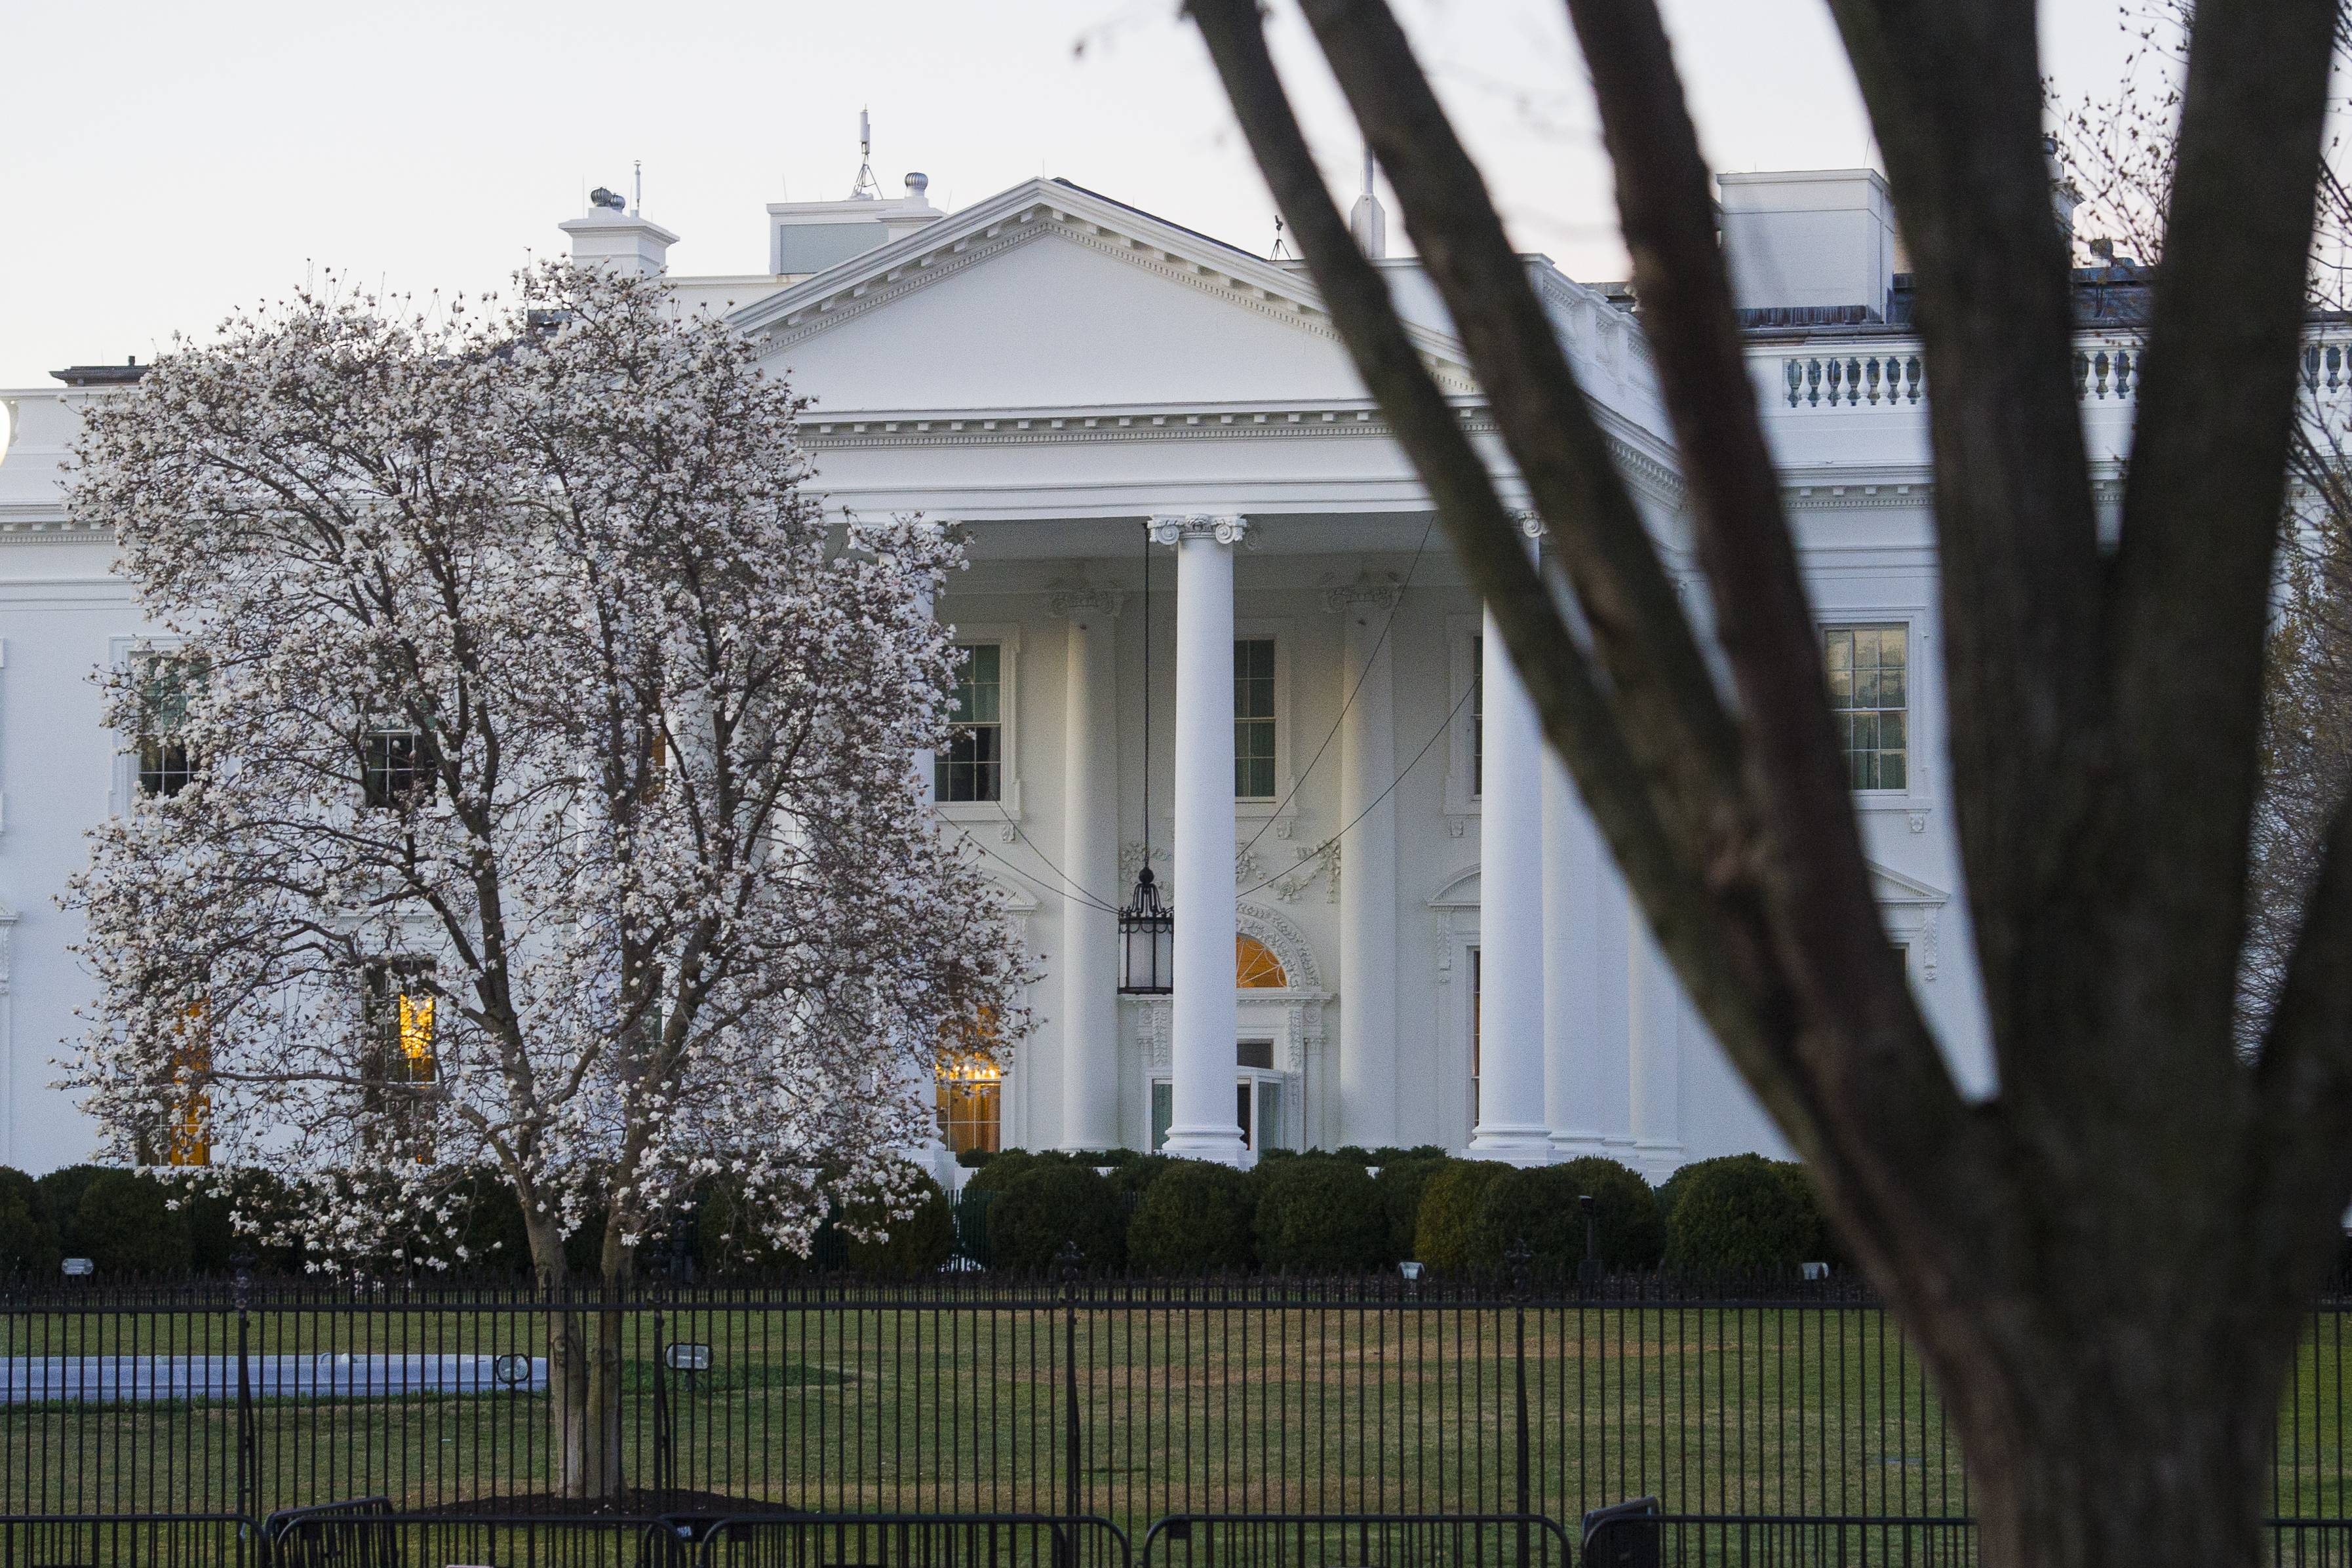 The White House is seen in Washington, Sunday, March 24, 2019. Special counsel Robert Mueller closed his long and contentious Russia investigation with no new charges, ending the probe that has cast a dark shadow over Donald Trump's presidency.